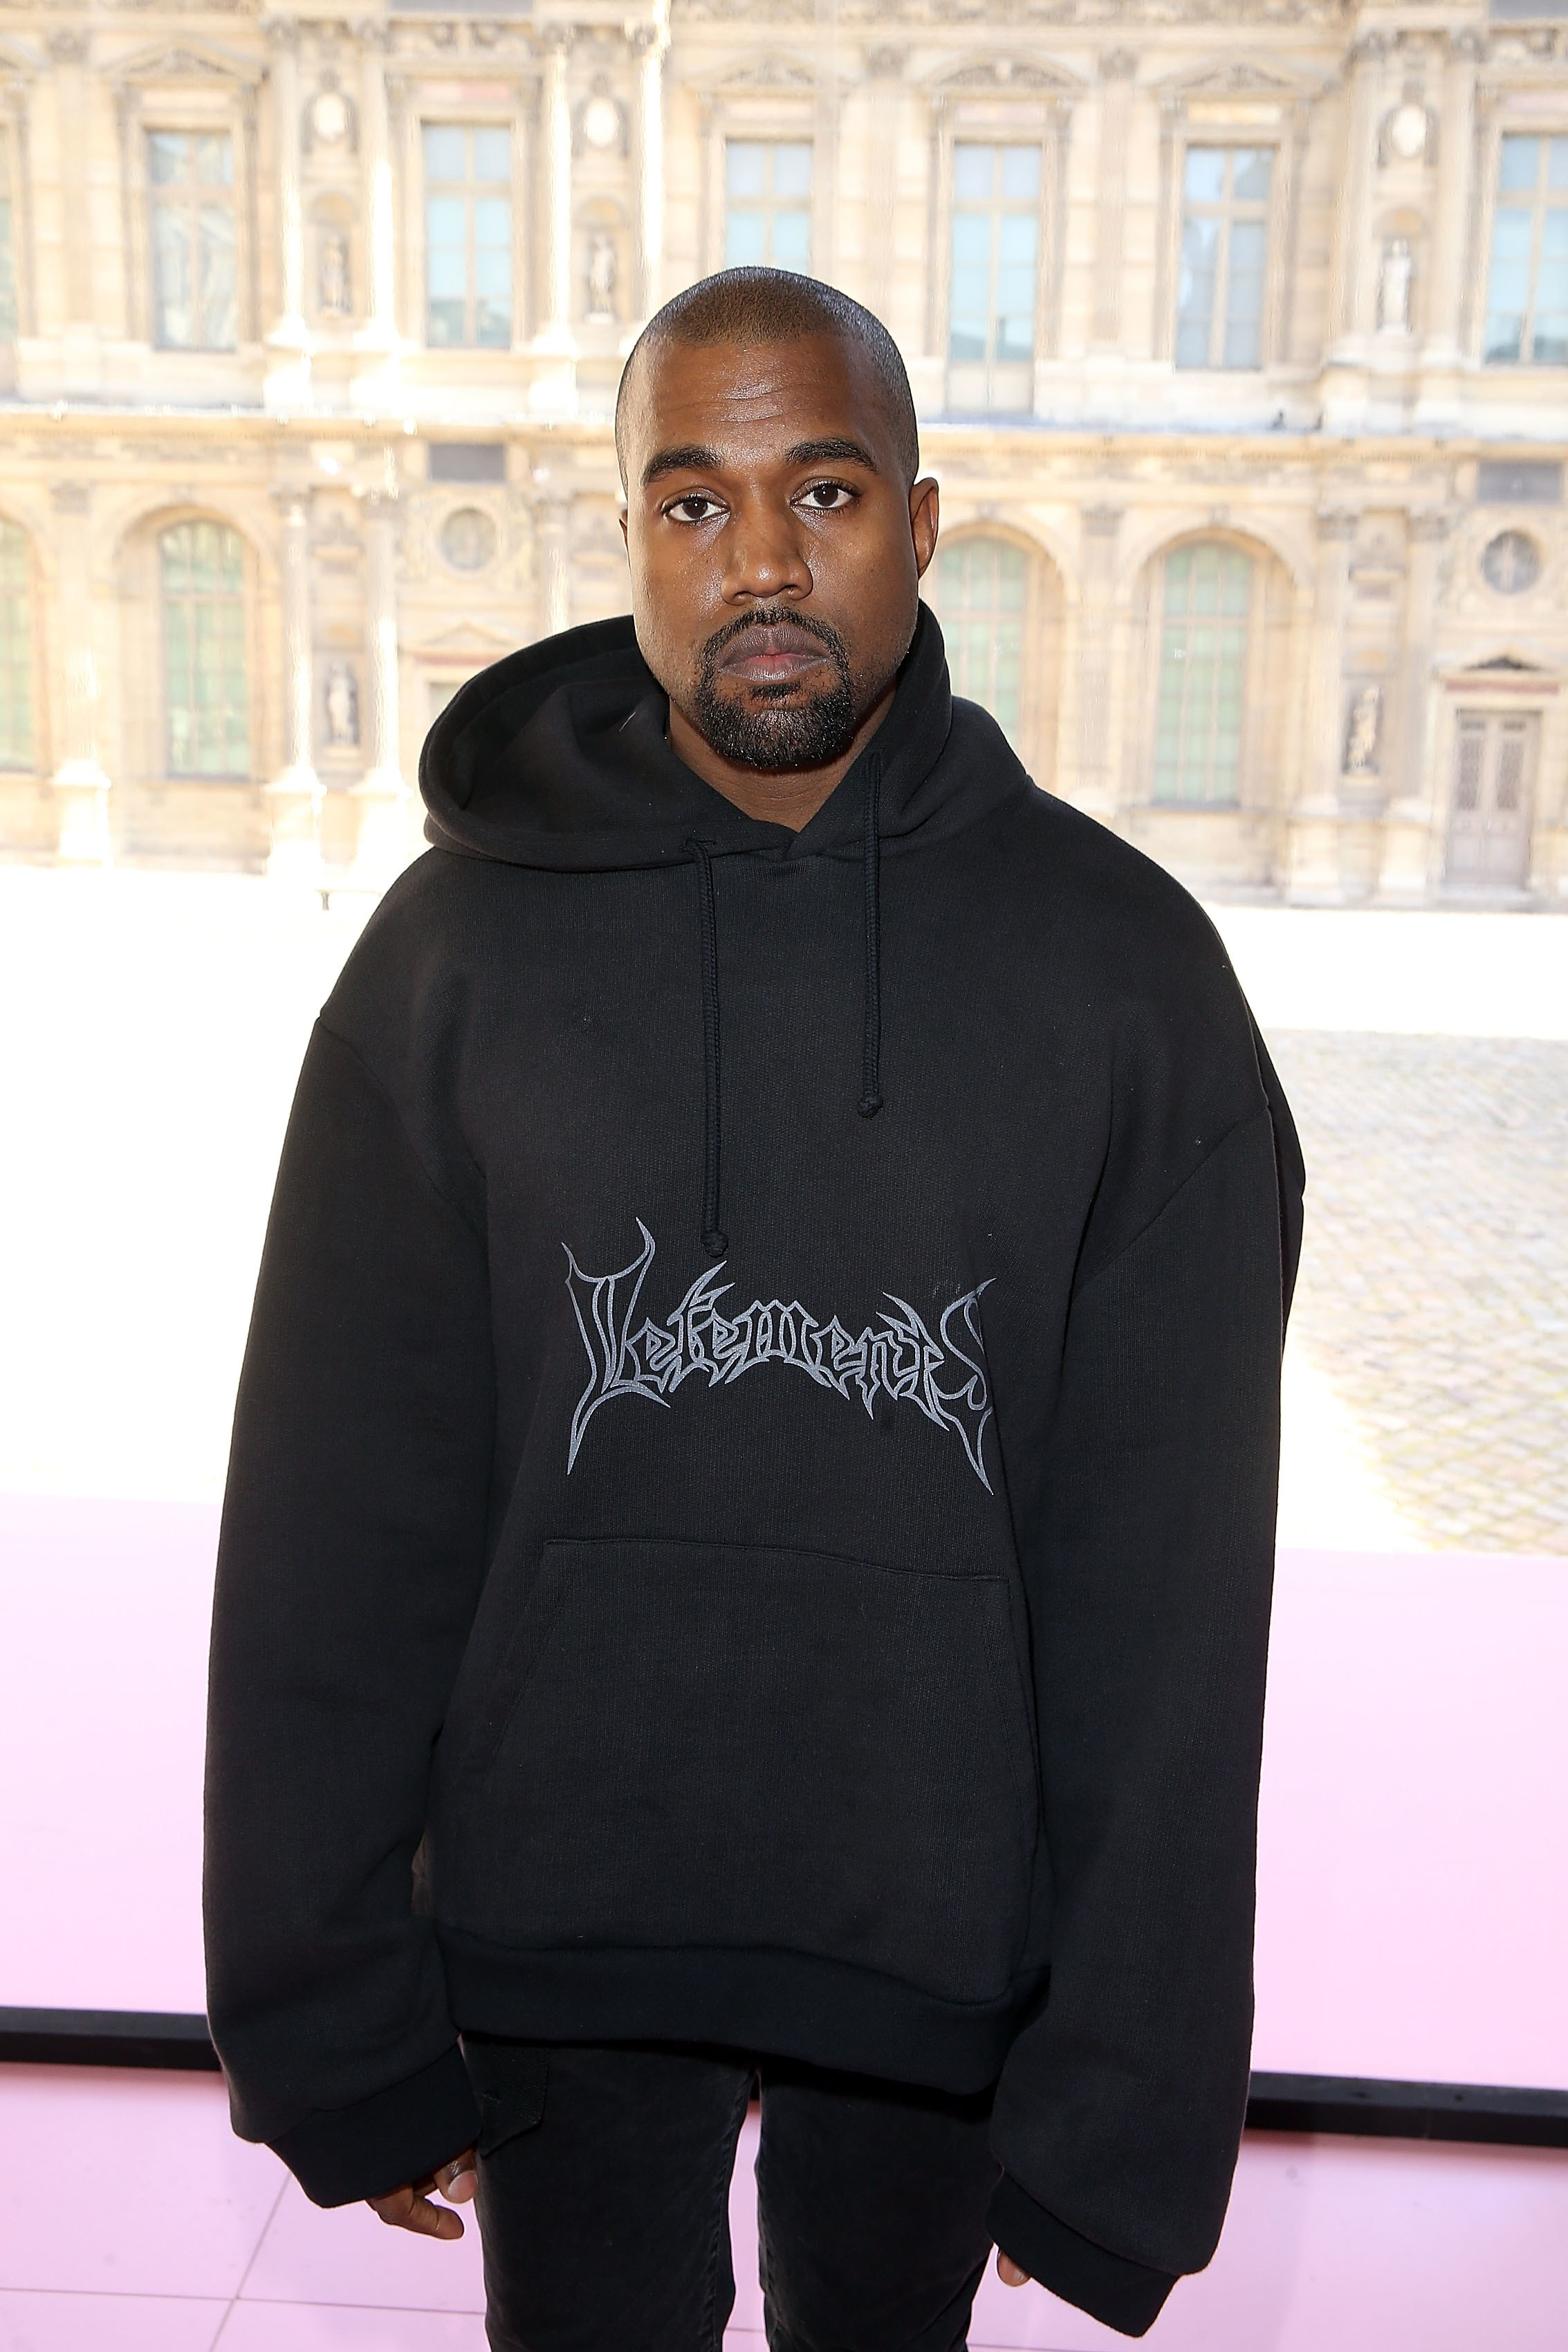 vetements-hoodie-kanye-getty.jpg